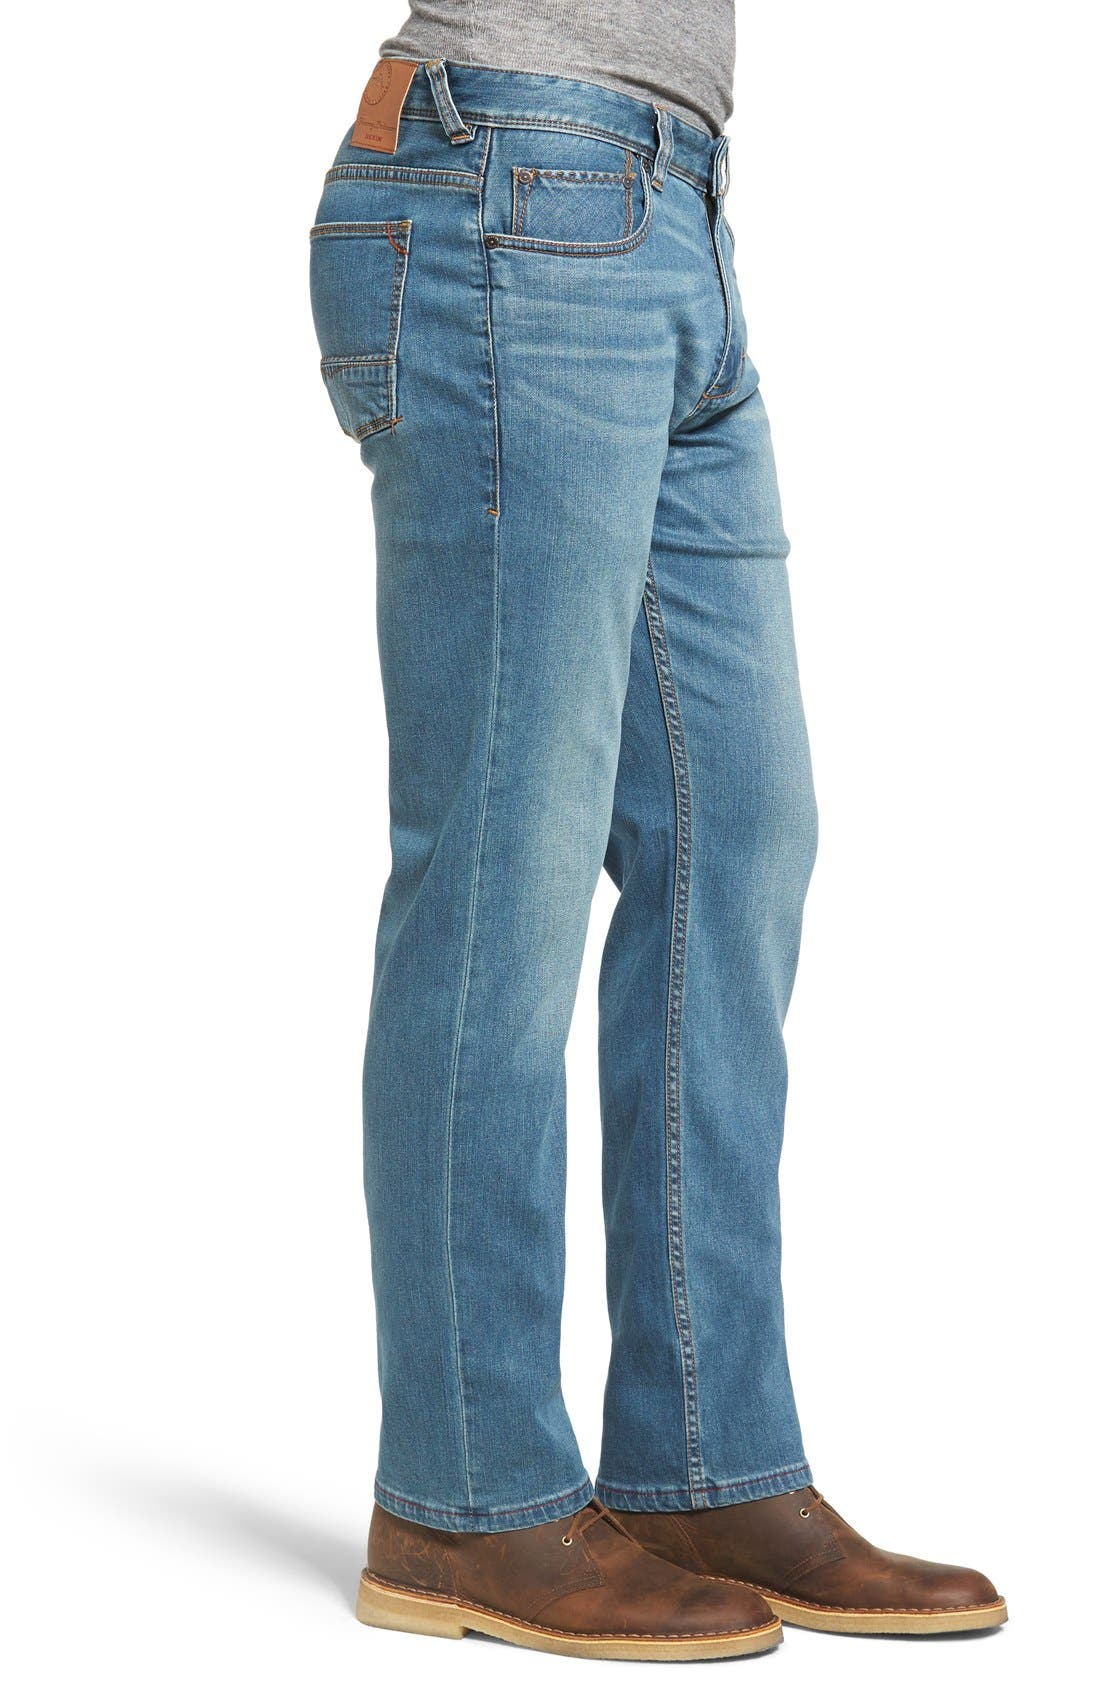 Sand Drifter Straight Leg Jeans,                             Alternate thumbnail 3, color,                             Vintage Wash